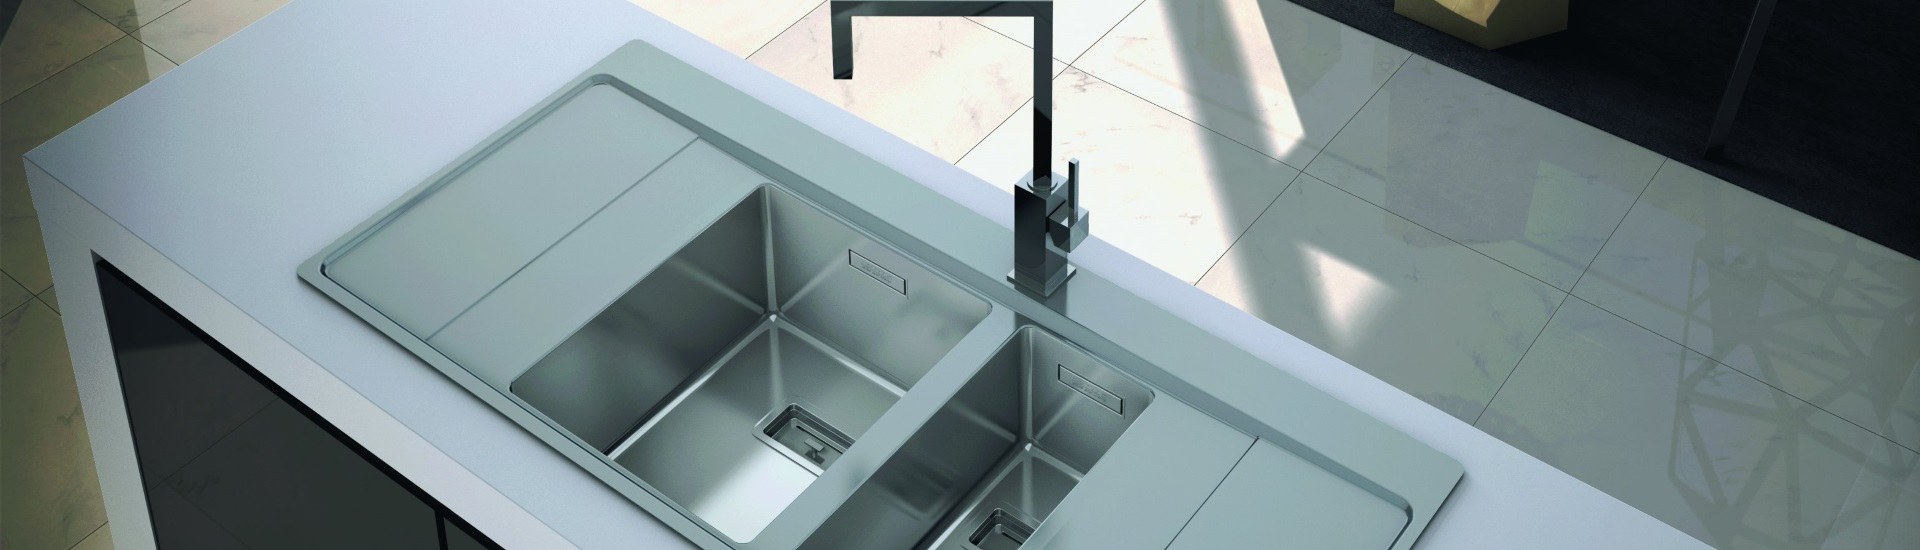 Kitchen sink and tap designs available in Carlisle, Cumbria